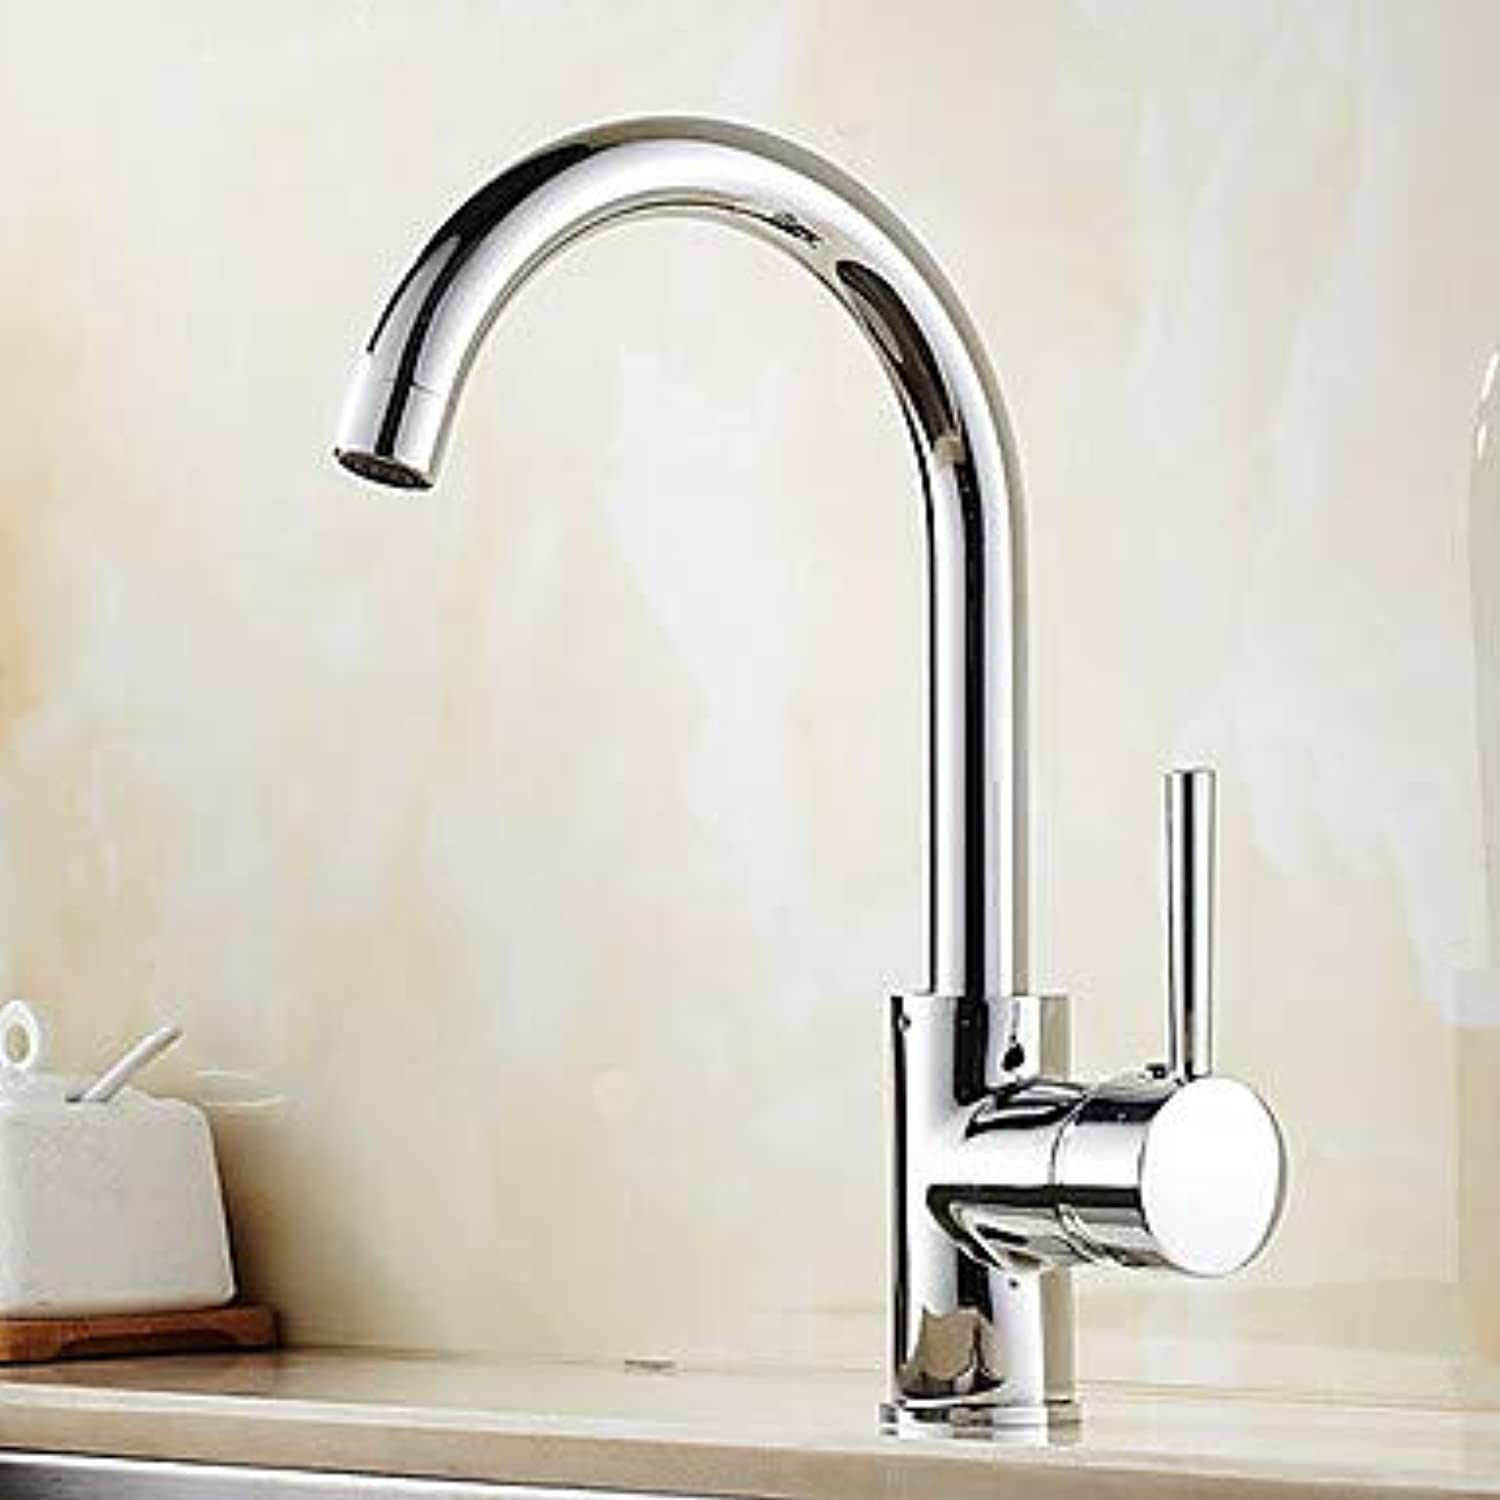 Mangeoo Kitchen Faucet Single Handle One Hole Oil-Rubbed Bronze Nickel Brushed Electroplated Spout Vessel Brass Tap,Chrome